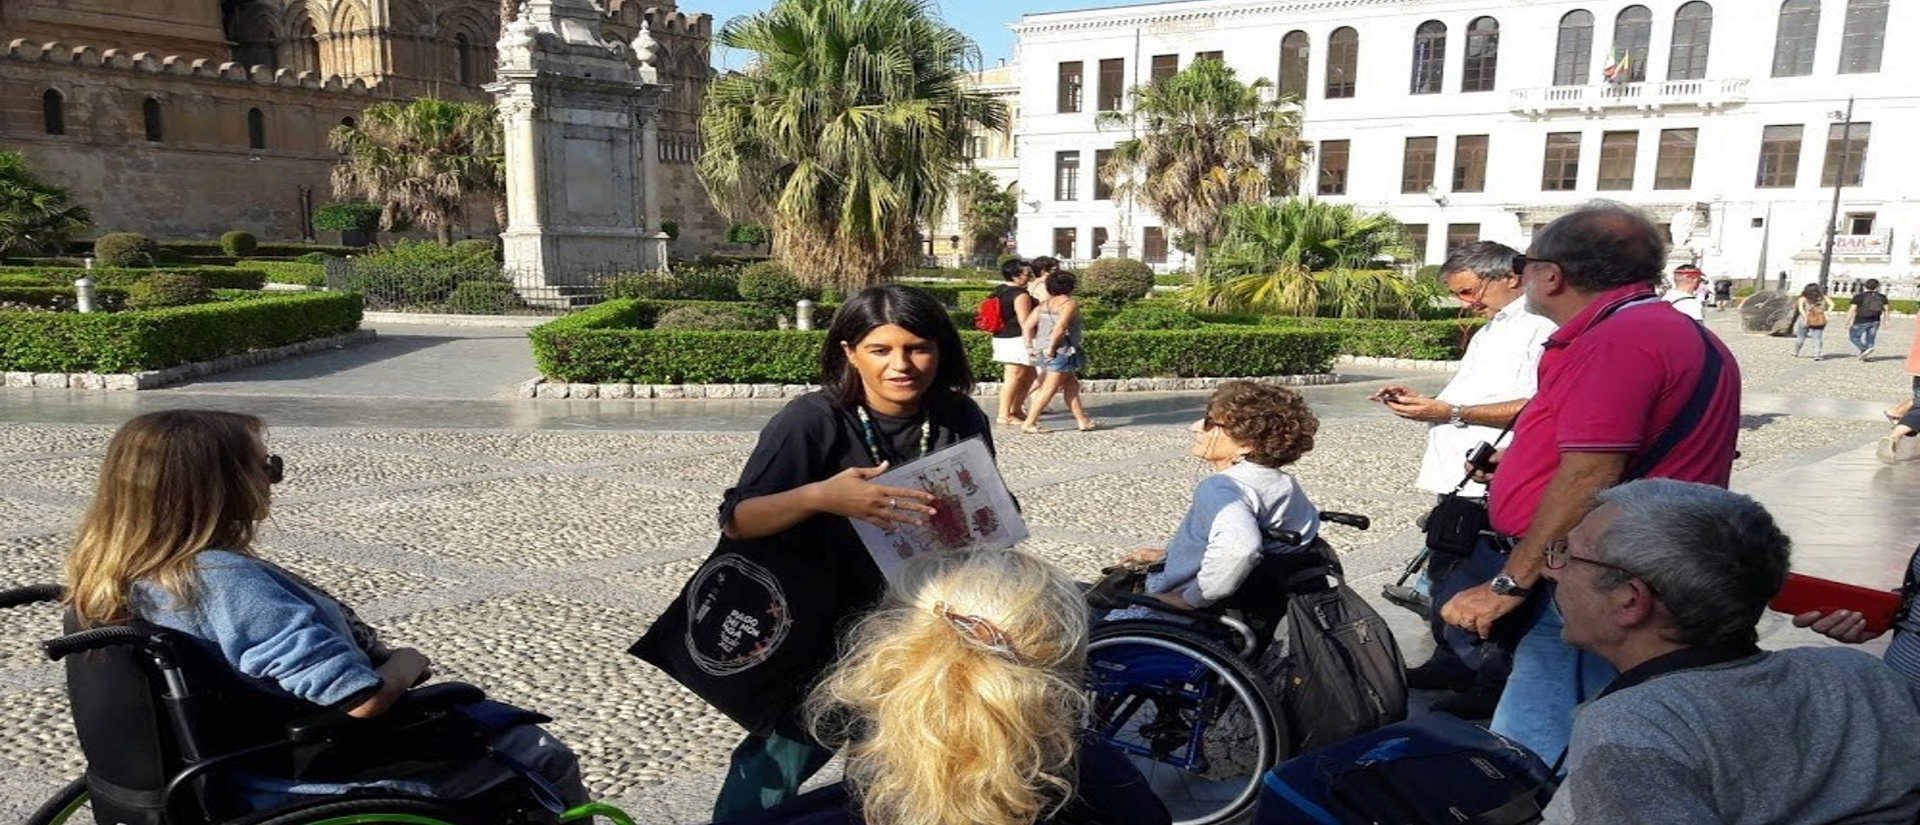 Viaggio in Sicilia di turismo Accessibile